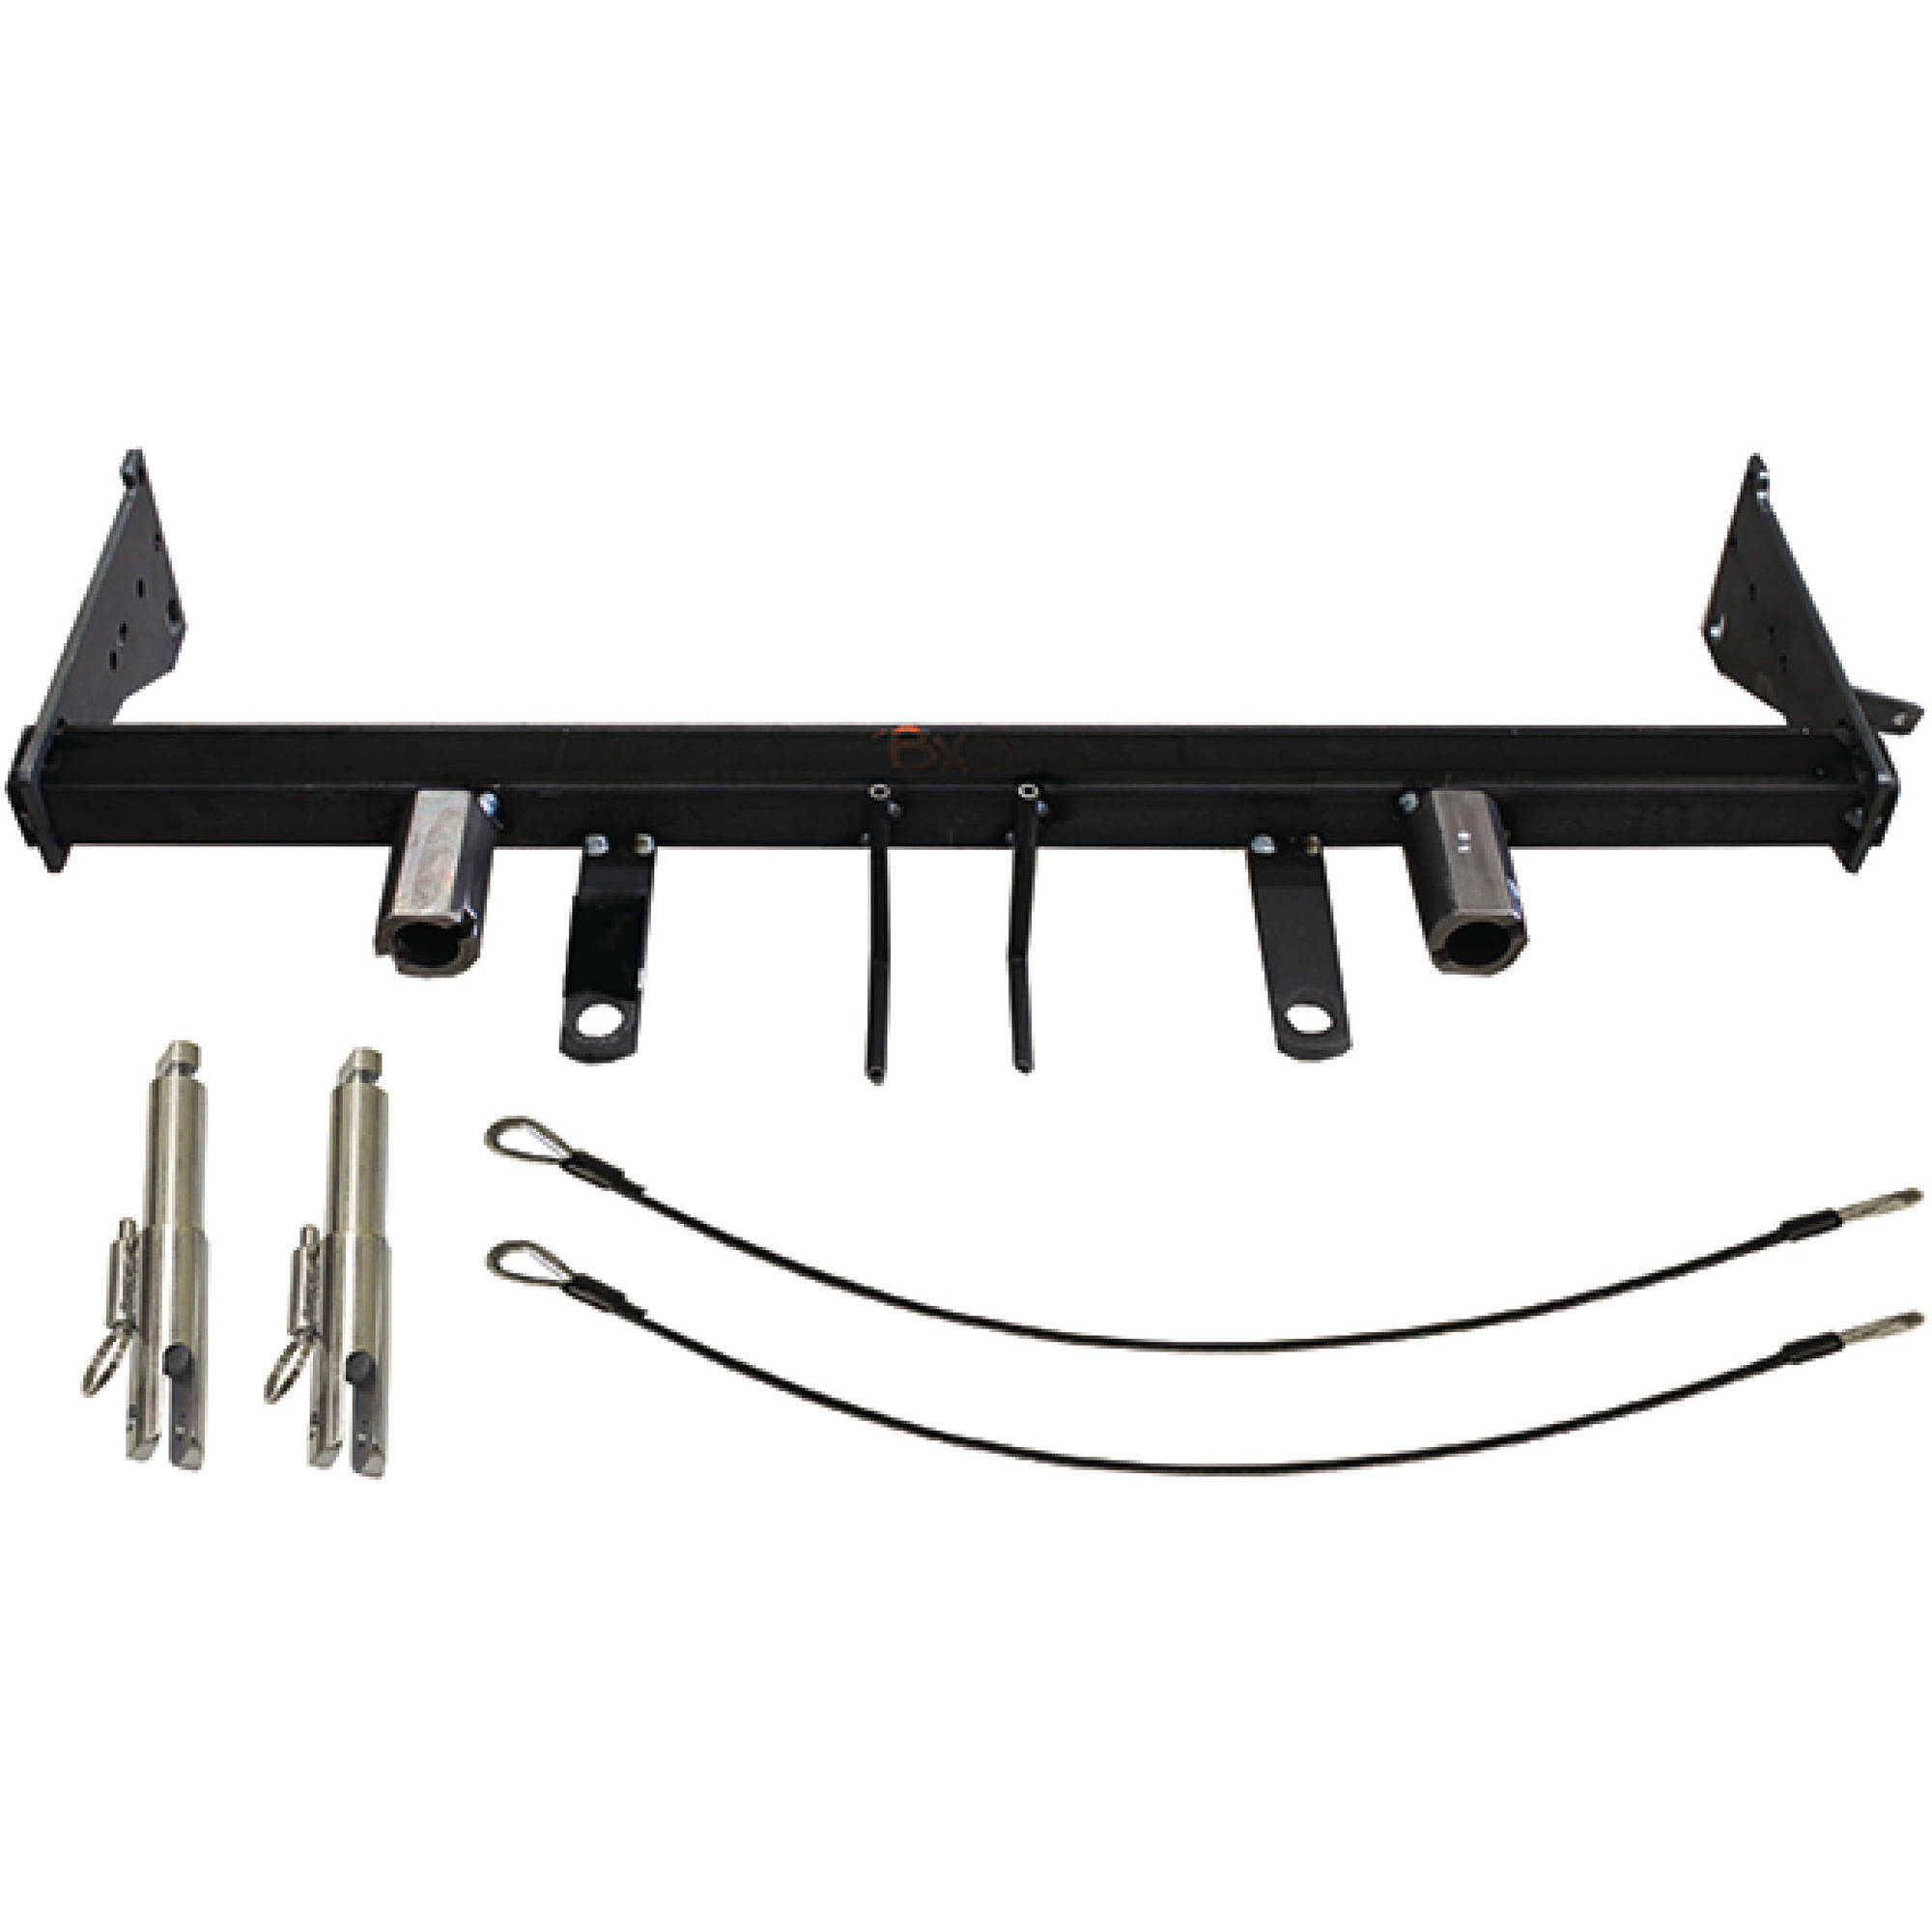 Blue Ox BX1648 Removable Tab RV Tow Baseplates for 1999-2002 Pontiac Grand Am (Includes GT) & 1998-2003... by Blue Ox